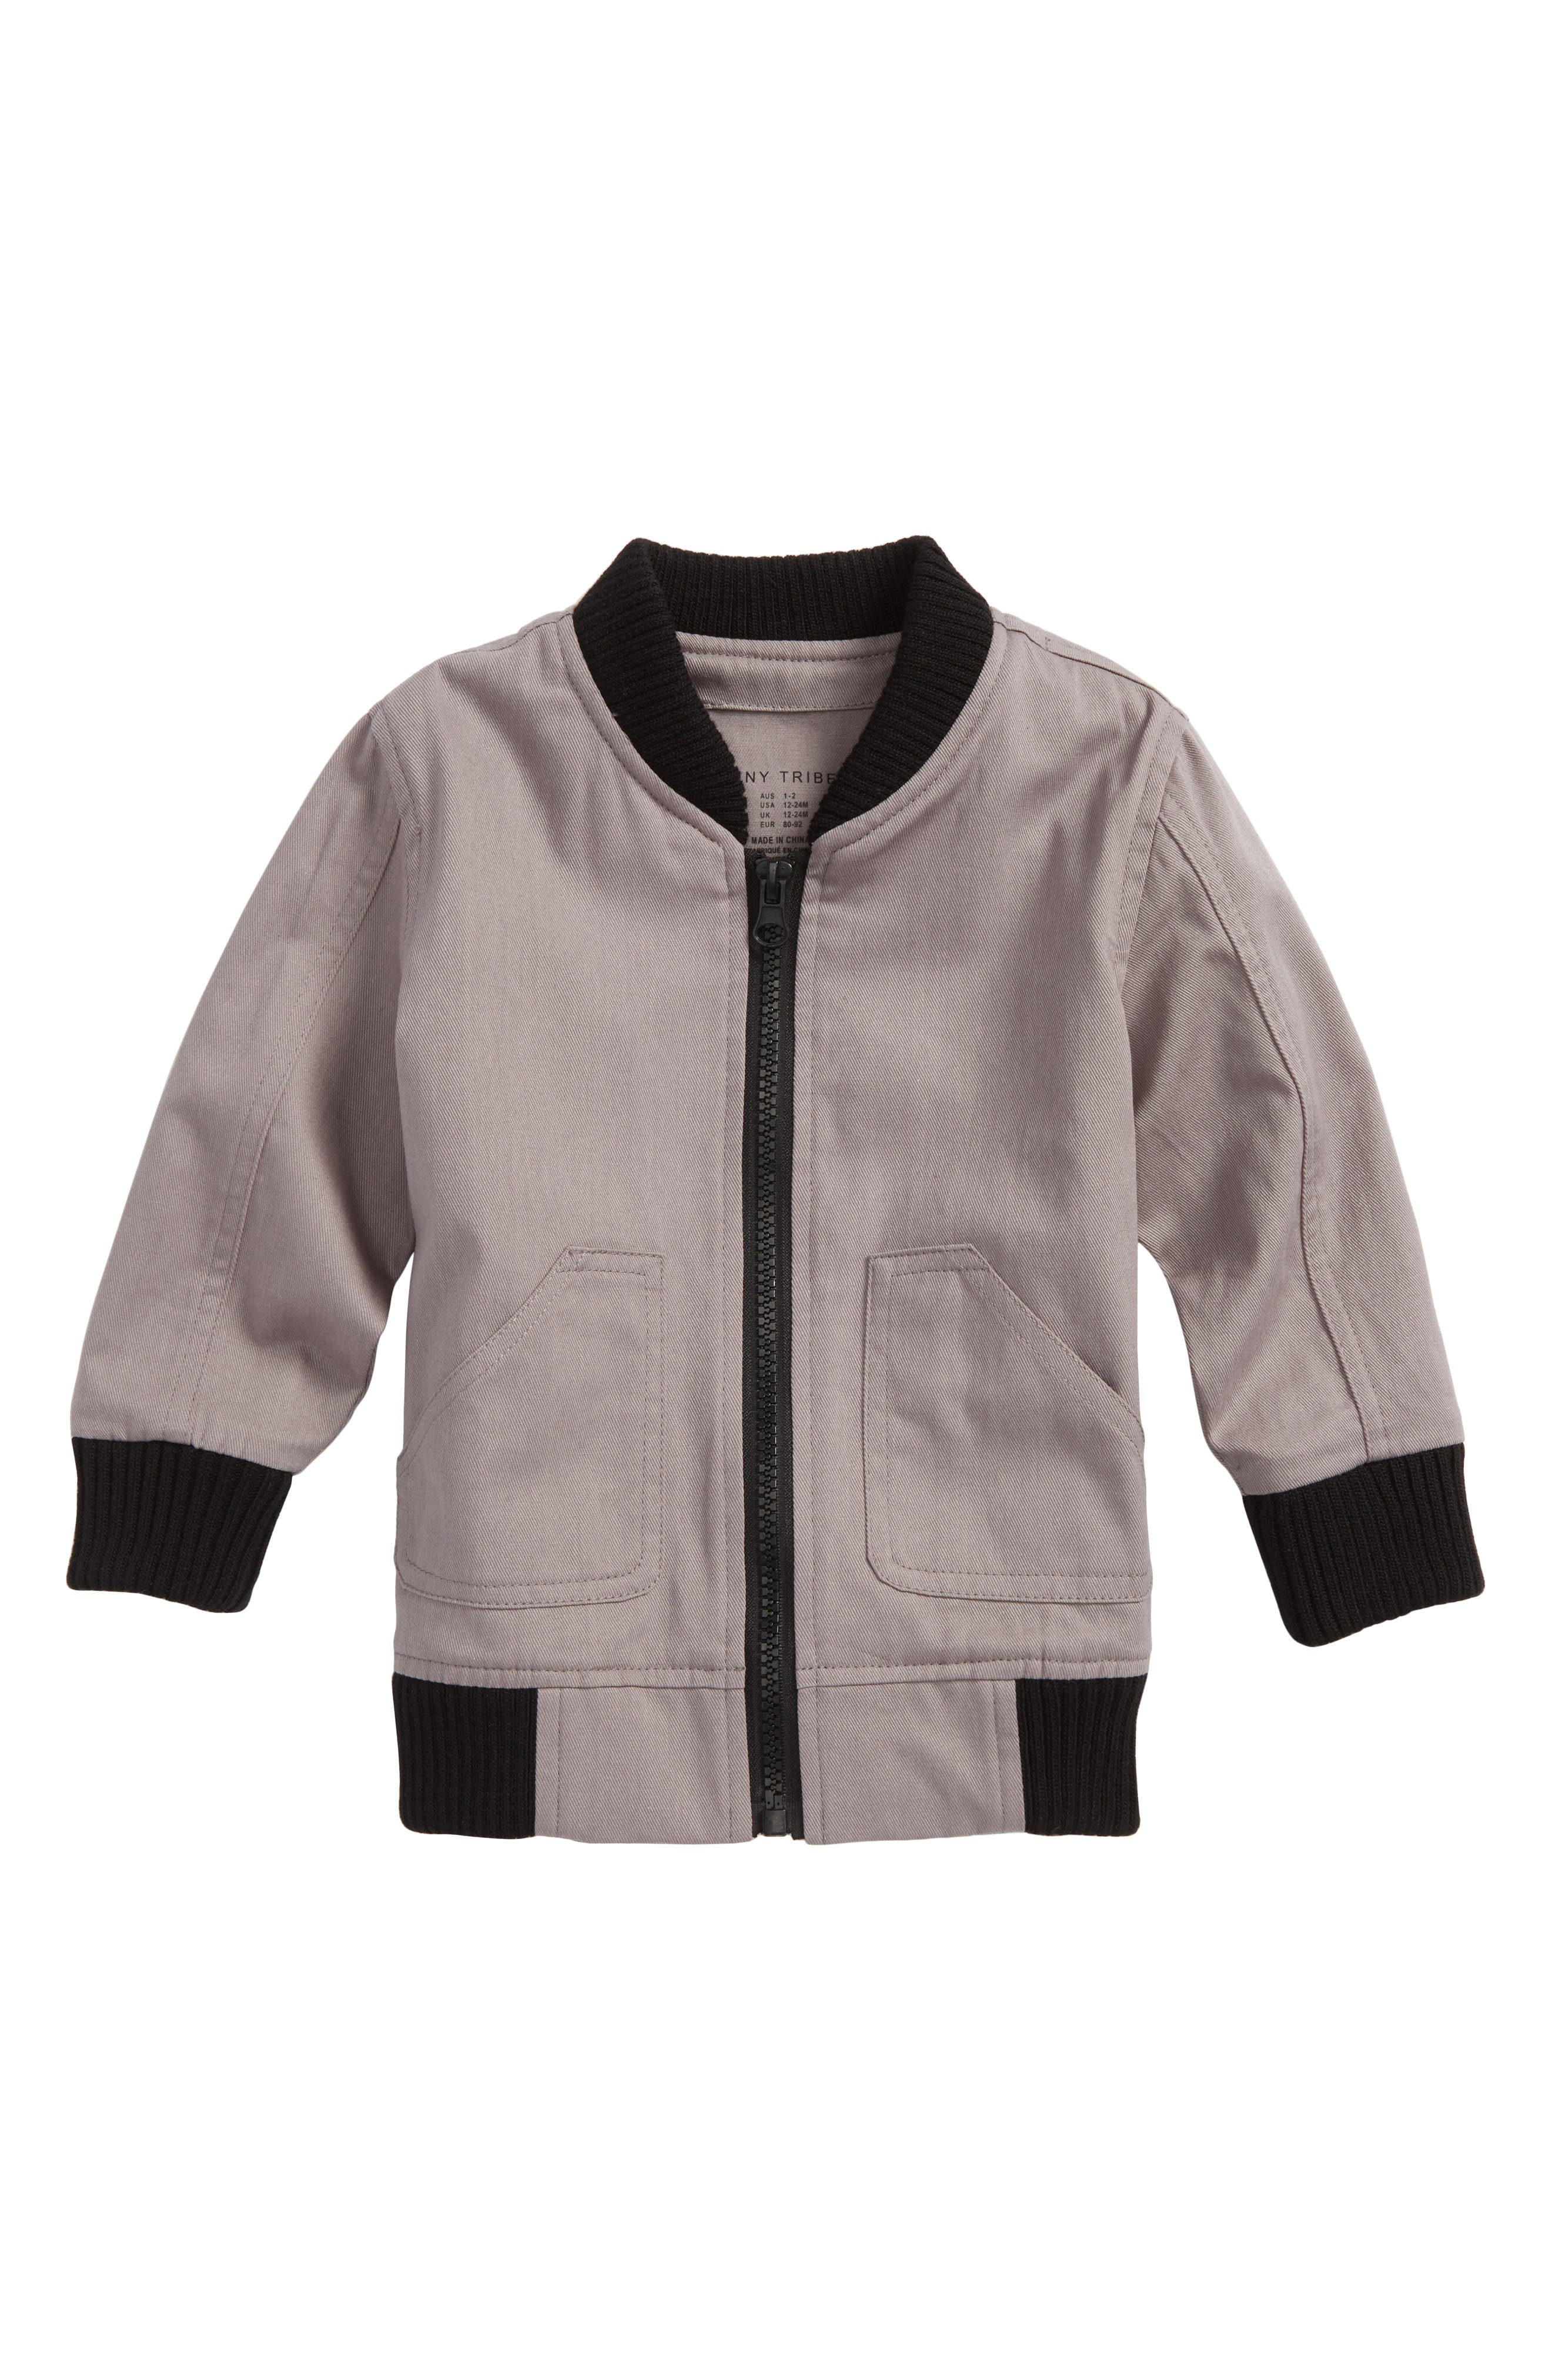 One Fine Apple Bomber Jacket,                             Main thumbnail 1, color,                             035